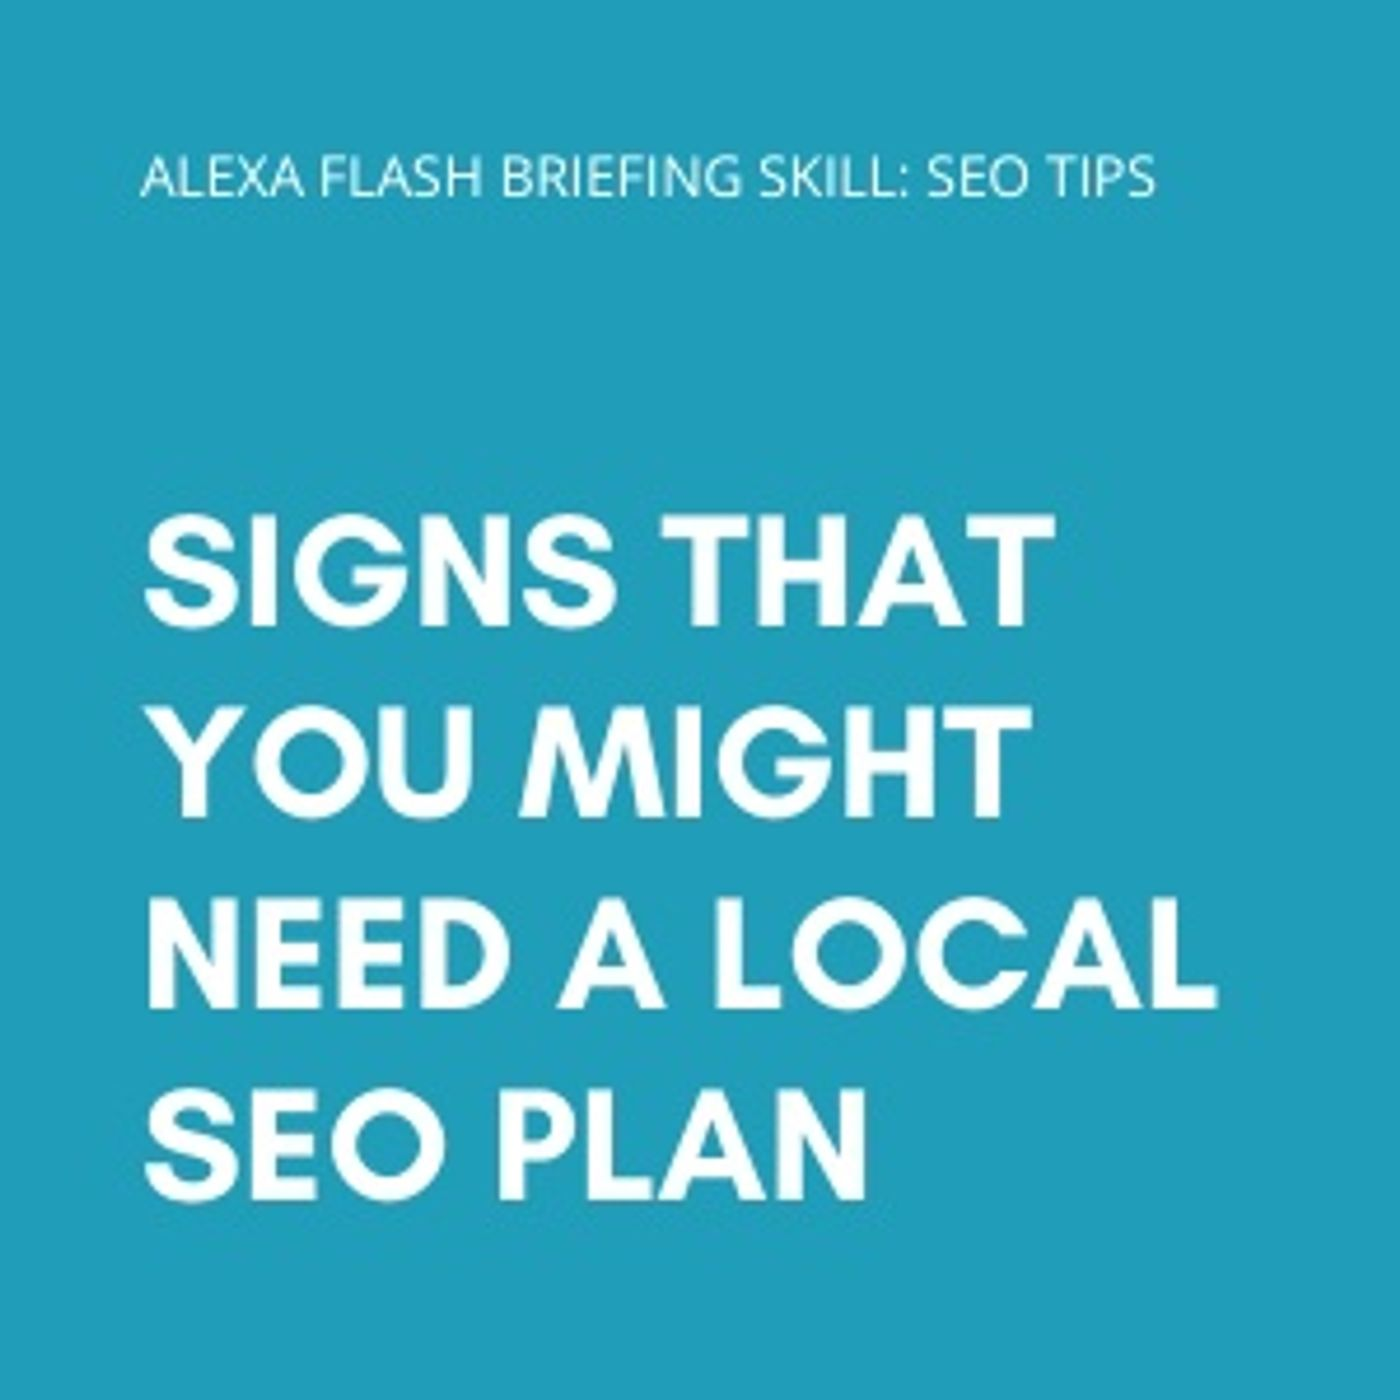 Signs that you might need a local SEO plan